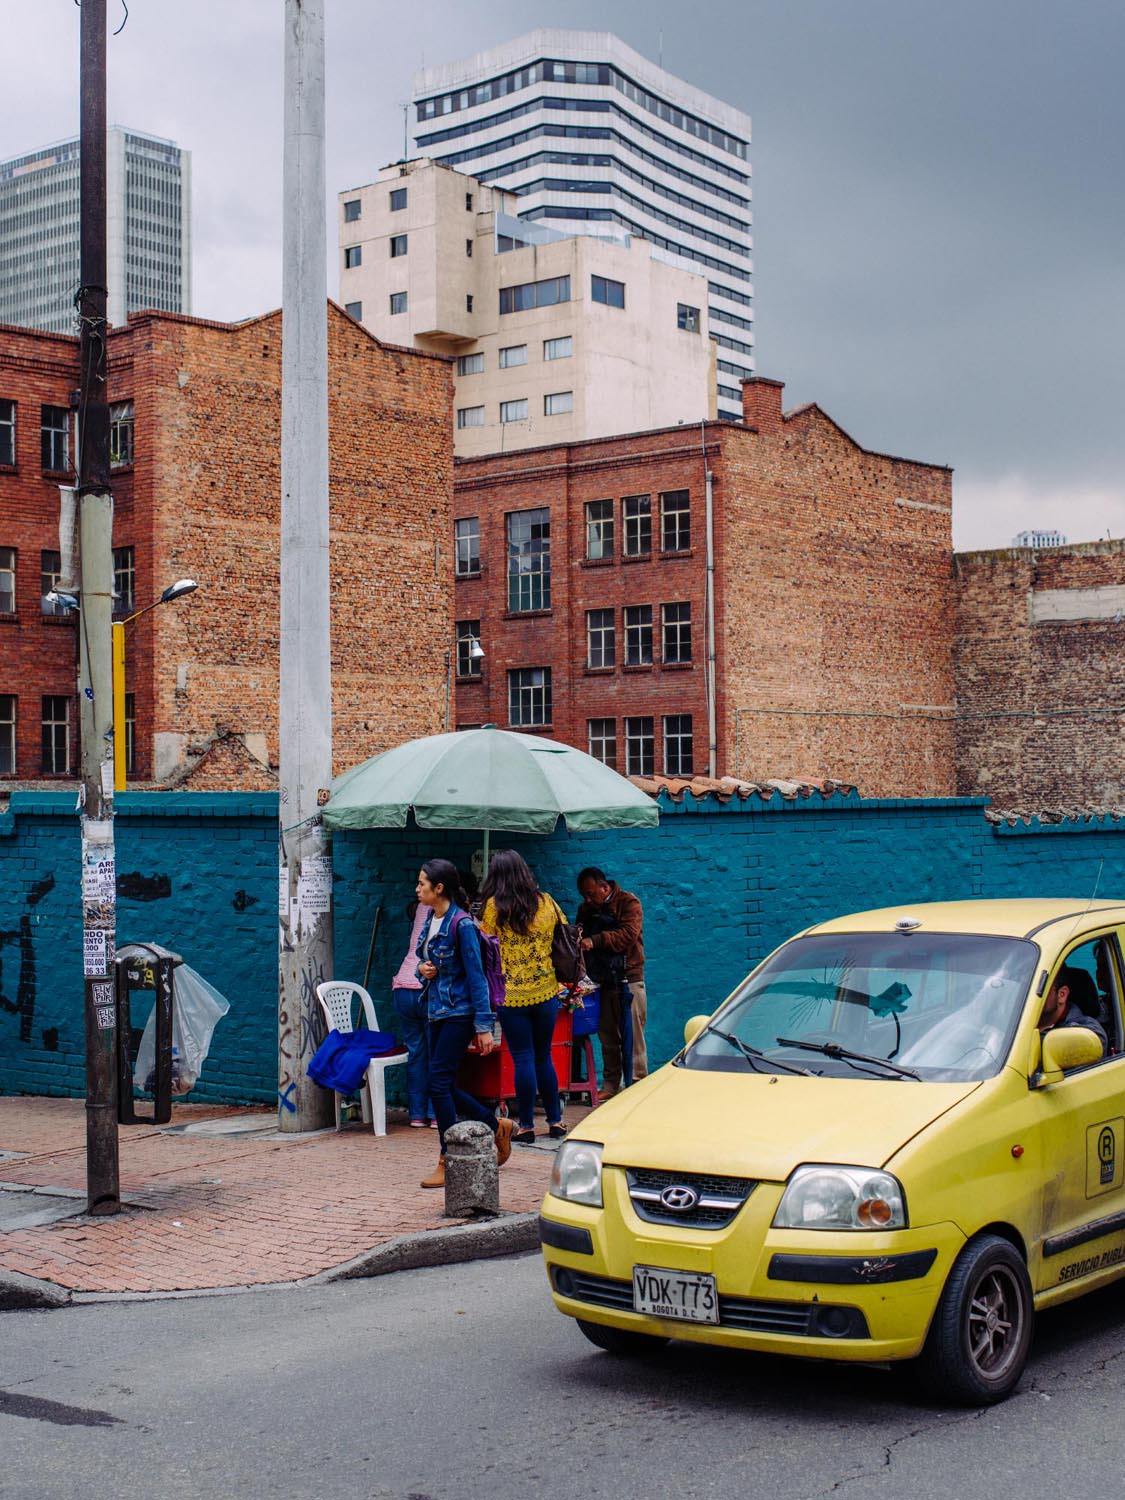 One of many yellow taxis in Bogota